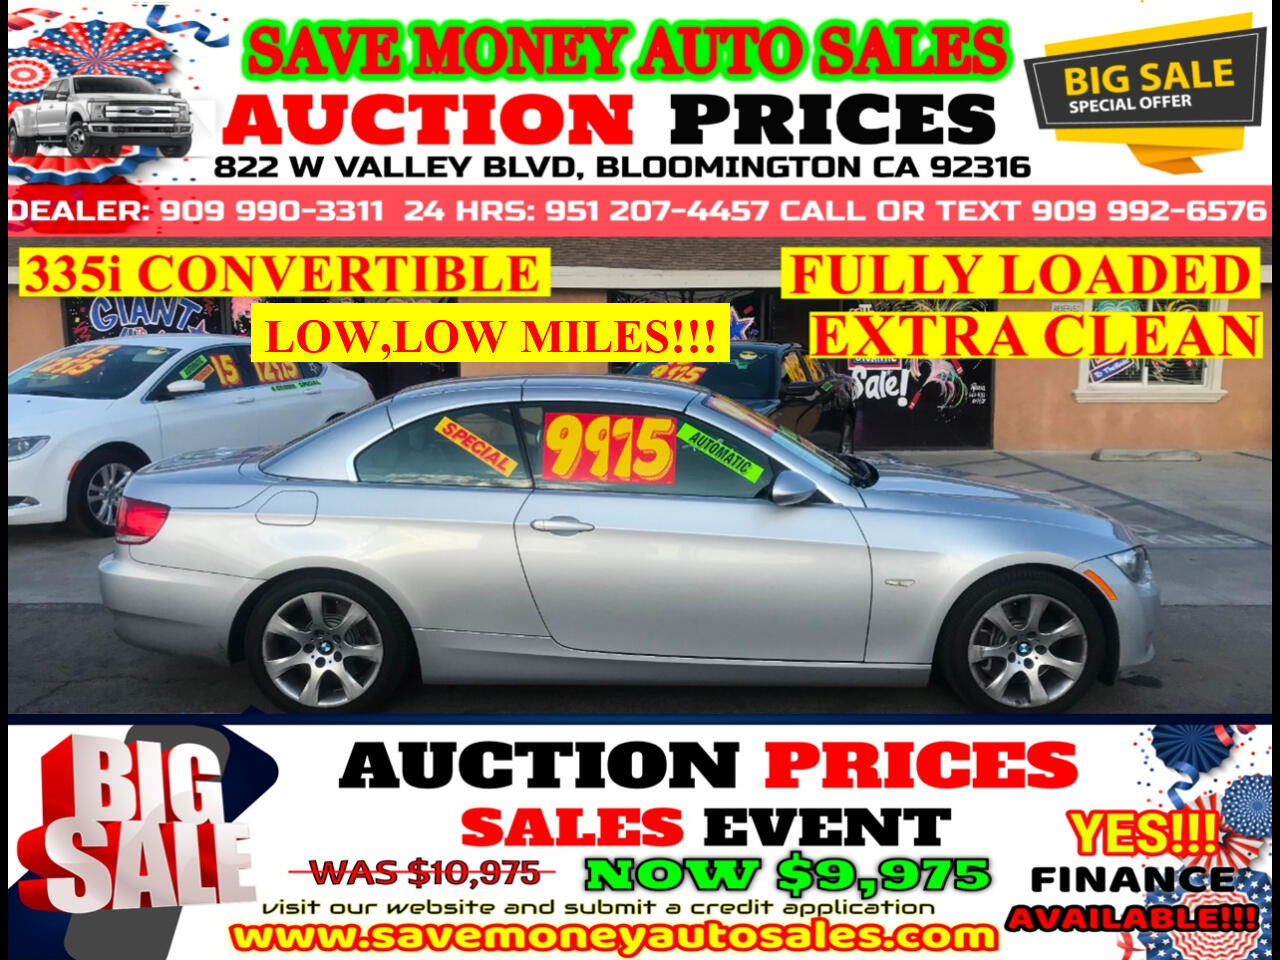 2007 BMW 3-Series 335i CONVERTIBLE> AUTOMATIC> EXTRA CLEAN> LOADED